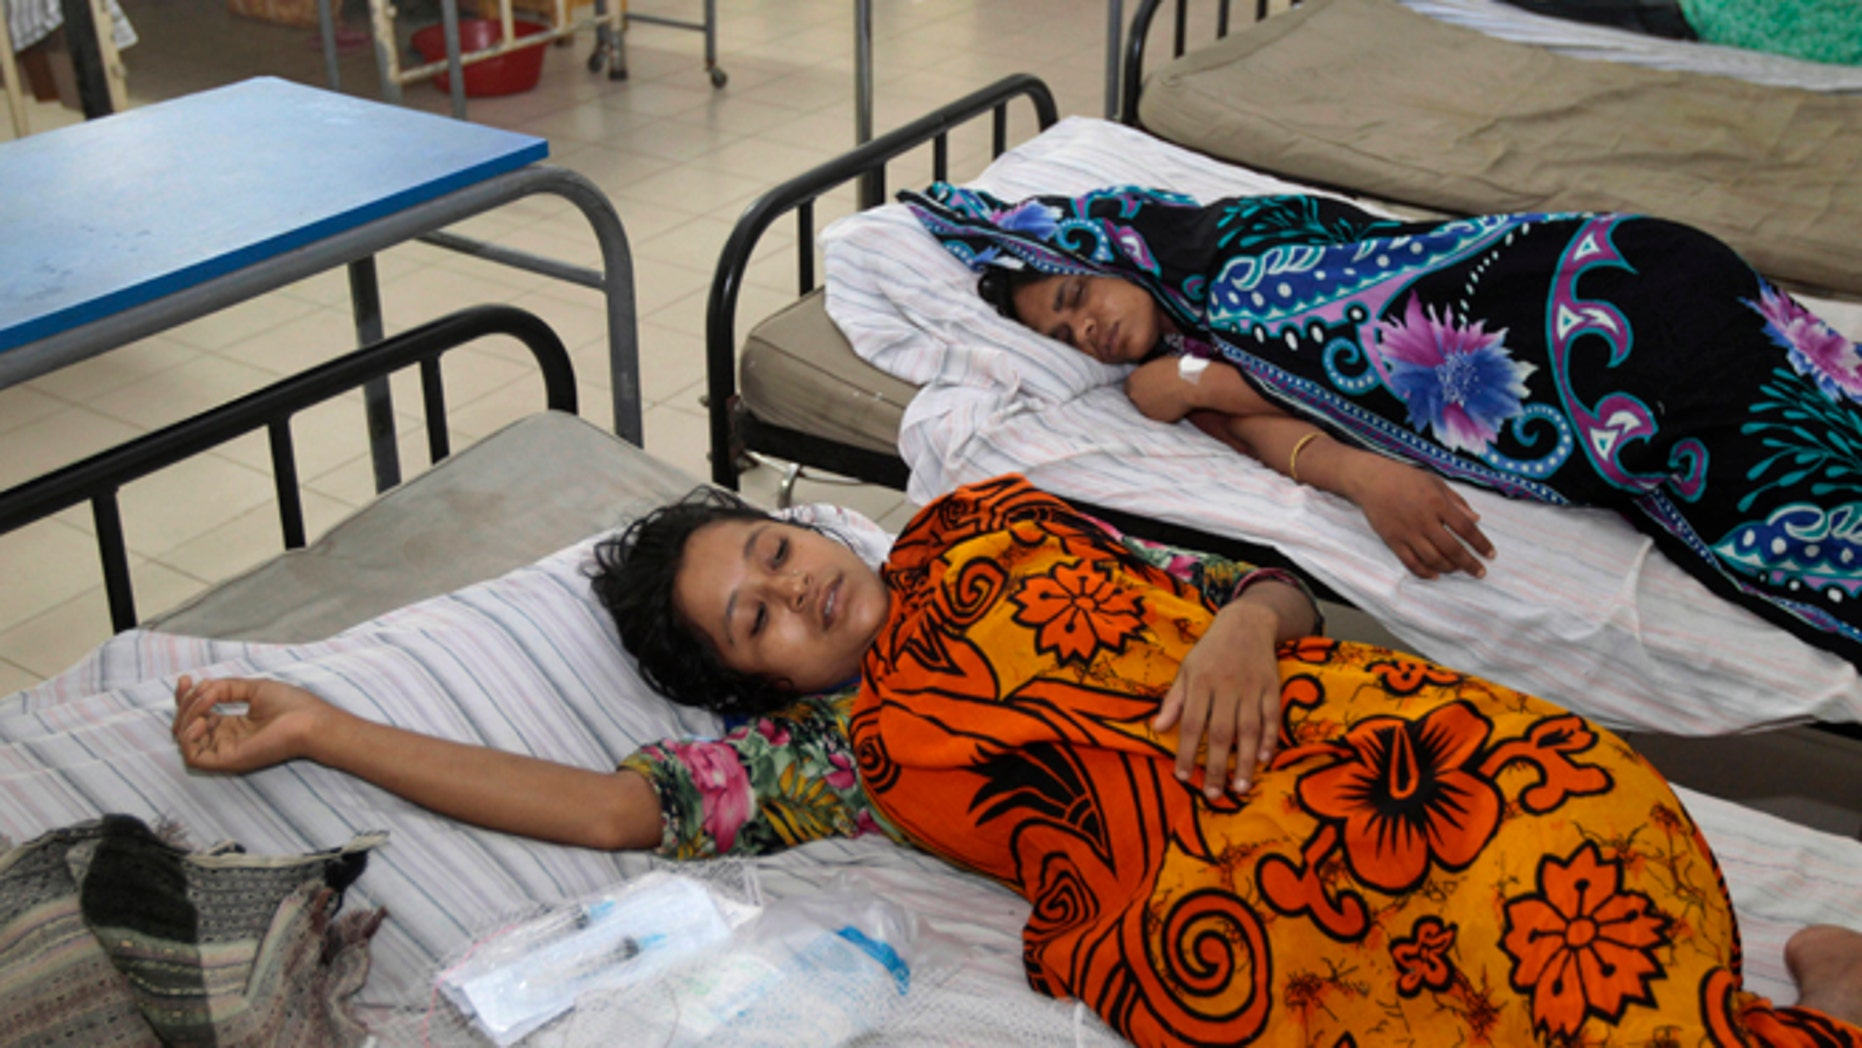 June 6, 2013: Bangladeshi garment workers who fell ill during their shifts at a sweater factory lie on beds at a hospital on the outskirts of Dhaka, Bangladesh. About 450 garment workers fell ill at the Starlight Sweater Factory near Bangladesh's capital, due to possible water contamination. A building collapse near Dhaka in April killed 1,129 workers, injured others and highlighted the hazardous working conditions in thousands of garment factories in Bangladesh.